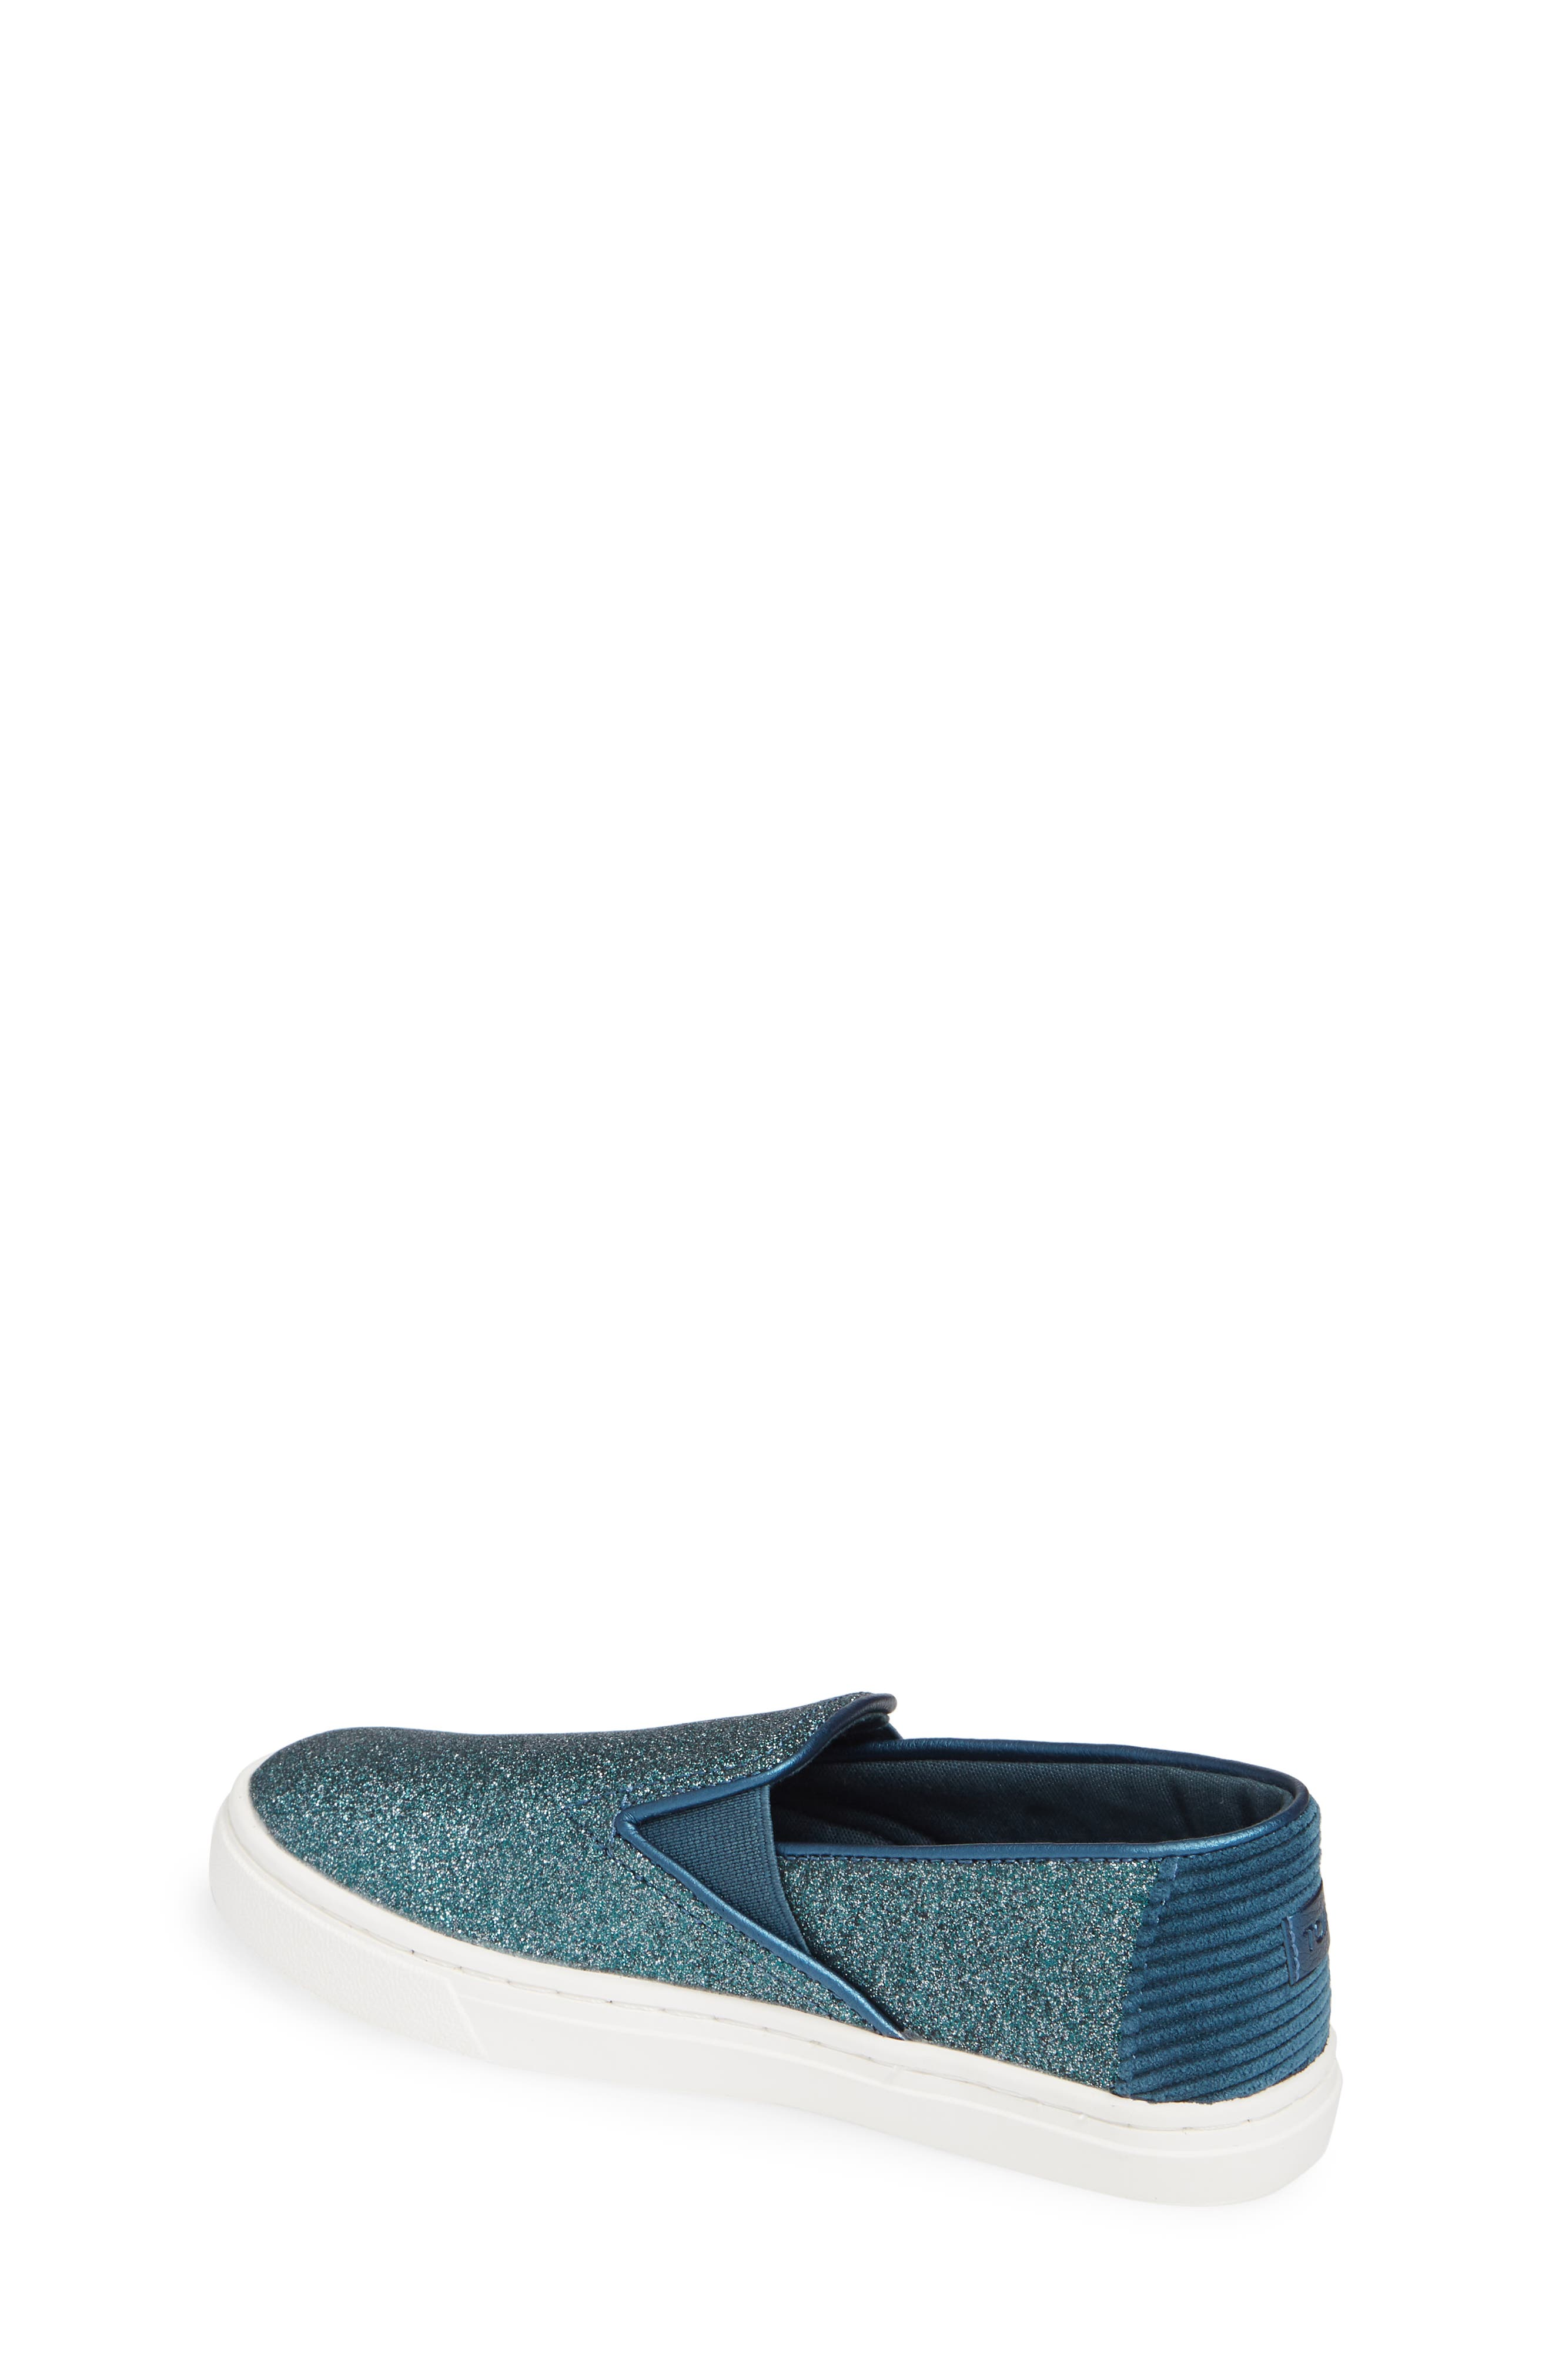 Luca Slip-On Sneaker,                             Alternate thumbnail 2, color,                             ATLANTIC IRIDESCENT/ CORDUROY